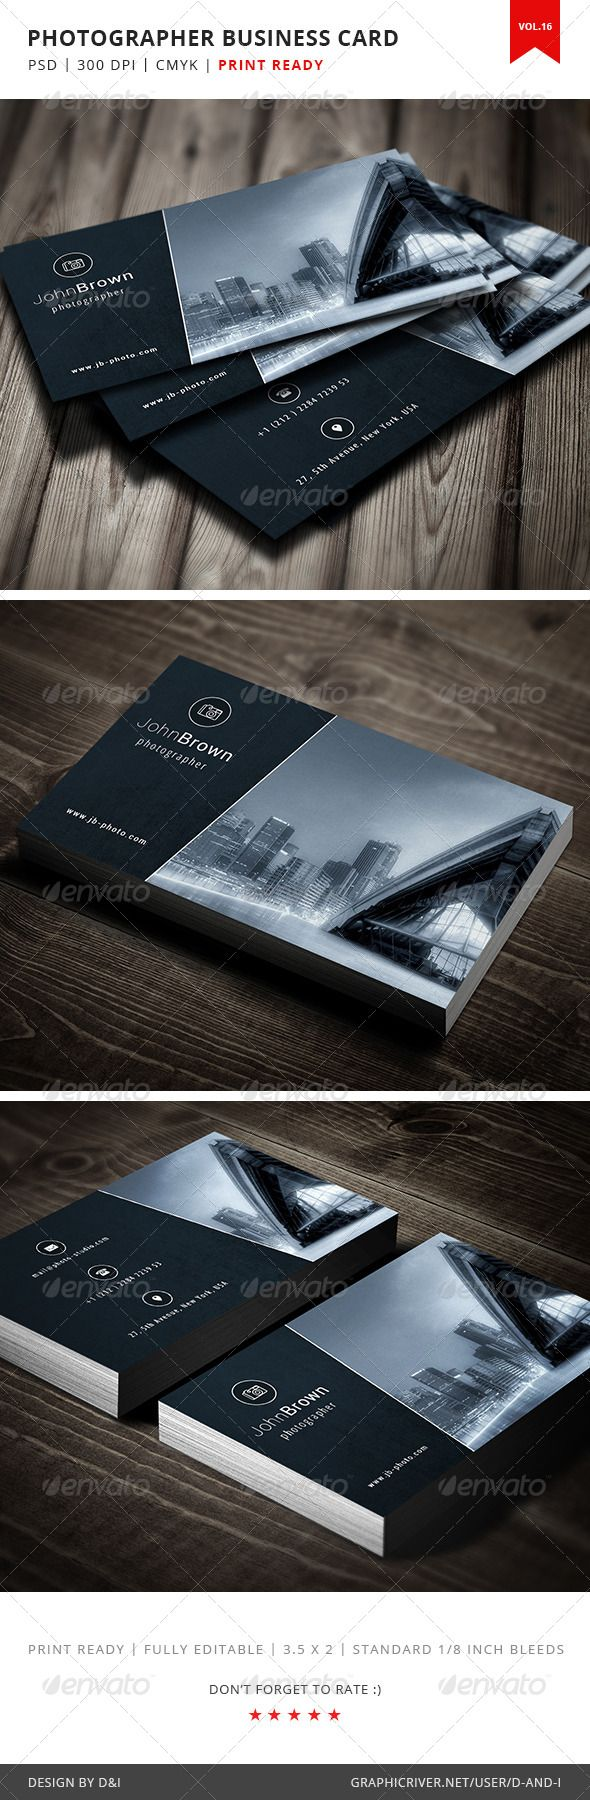 Best 25 photographer business cards ideas on pinterest best 25 photographer business cards ideas on pinterest photography business cards best visiting card designs and free business card design magicingreecefo Images